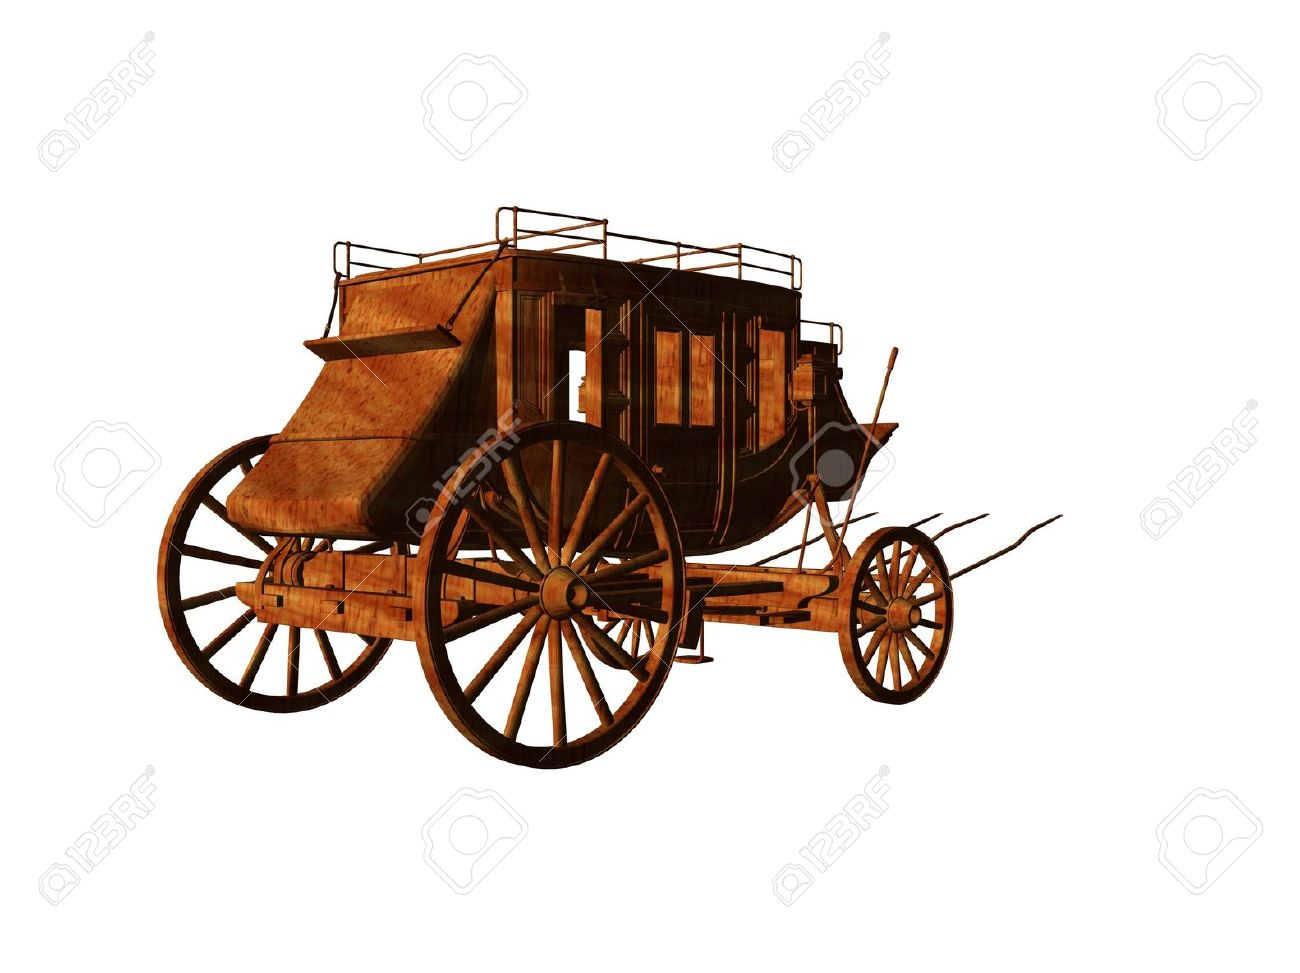 Isolated 3d Illustration Of An Old West Stagecoach Stock Photo.